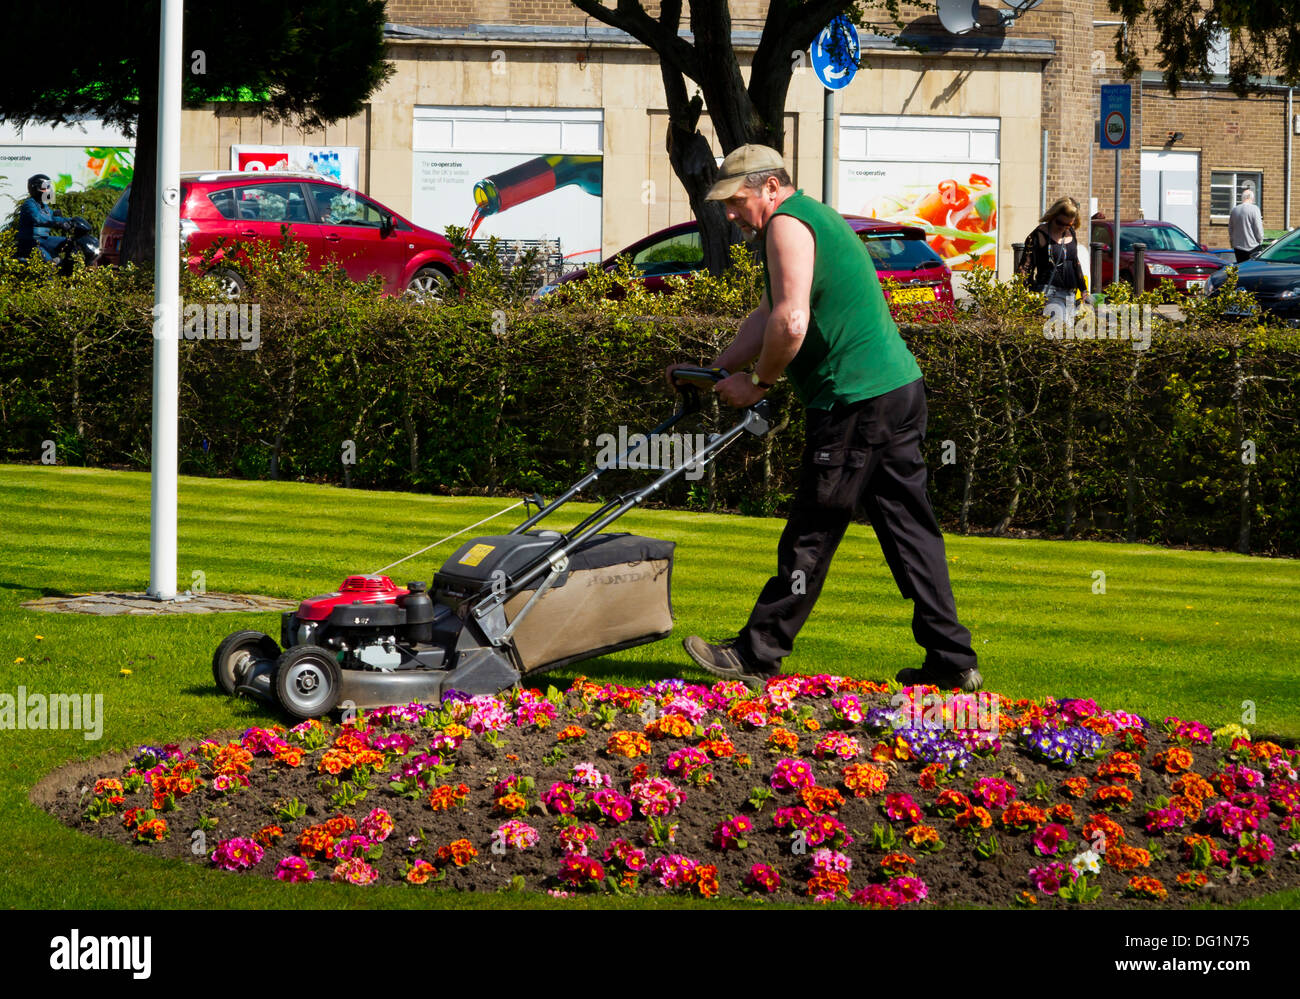 Council gardener mowing lawn in Hall Leys Park in Matlock Derbyshire England UK an award winning park in the Peak District - Stock Image